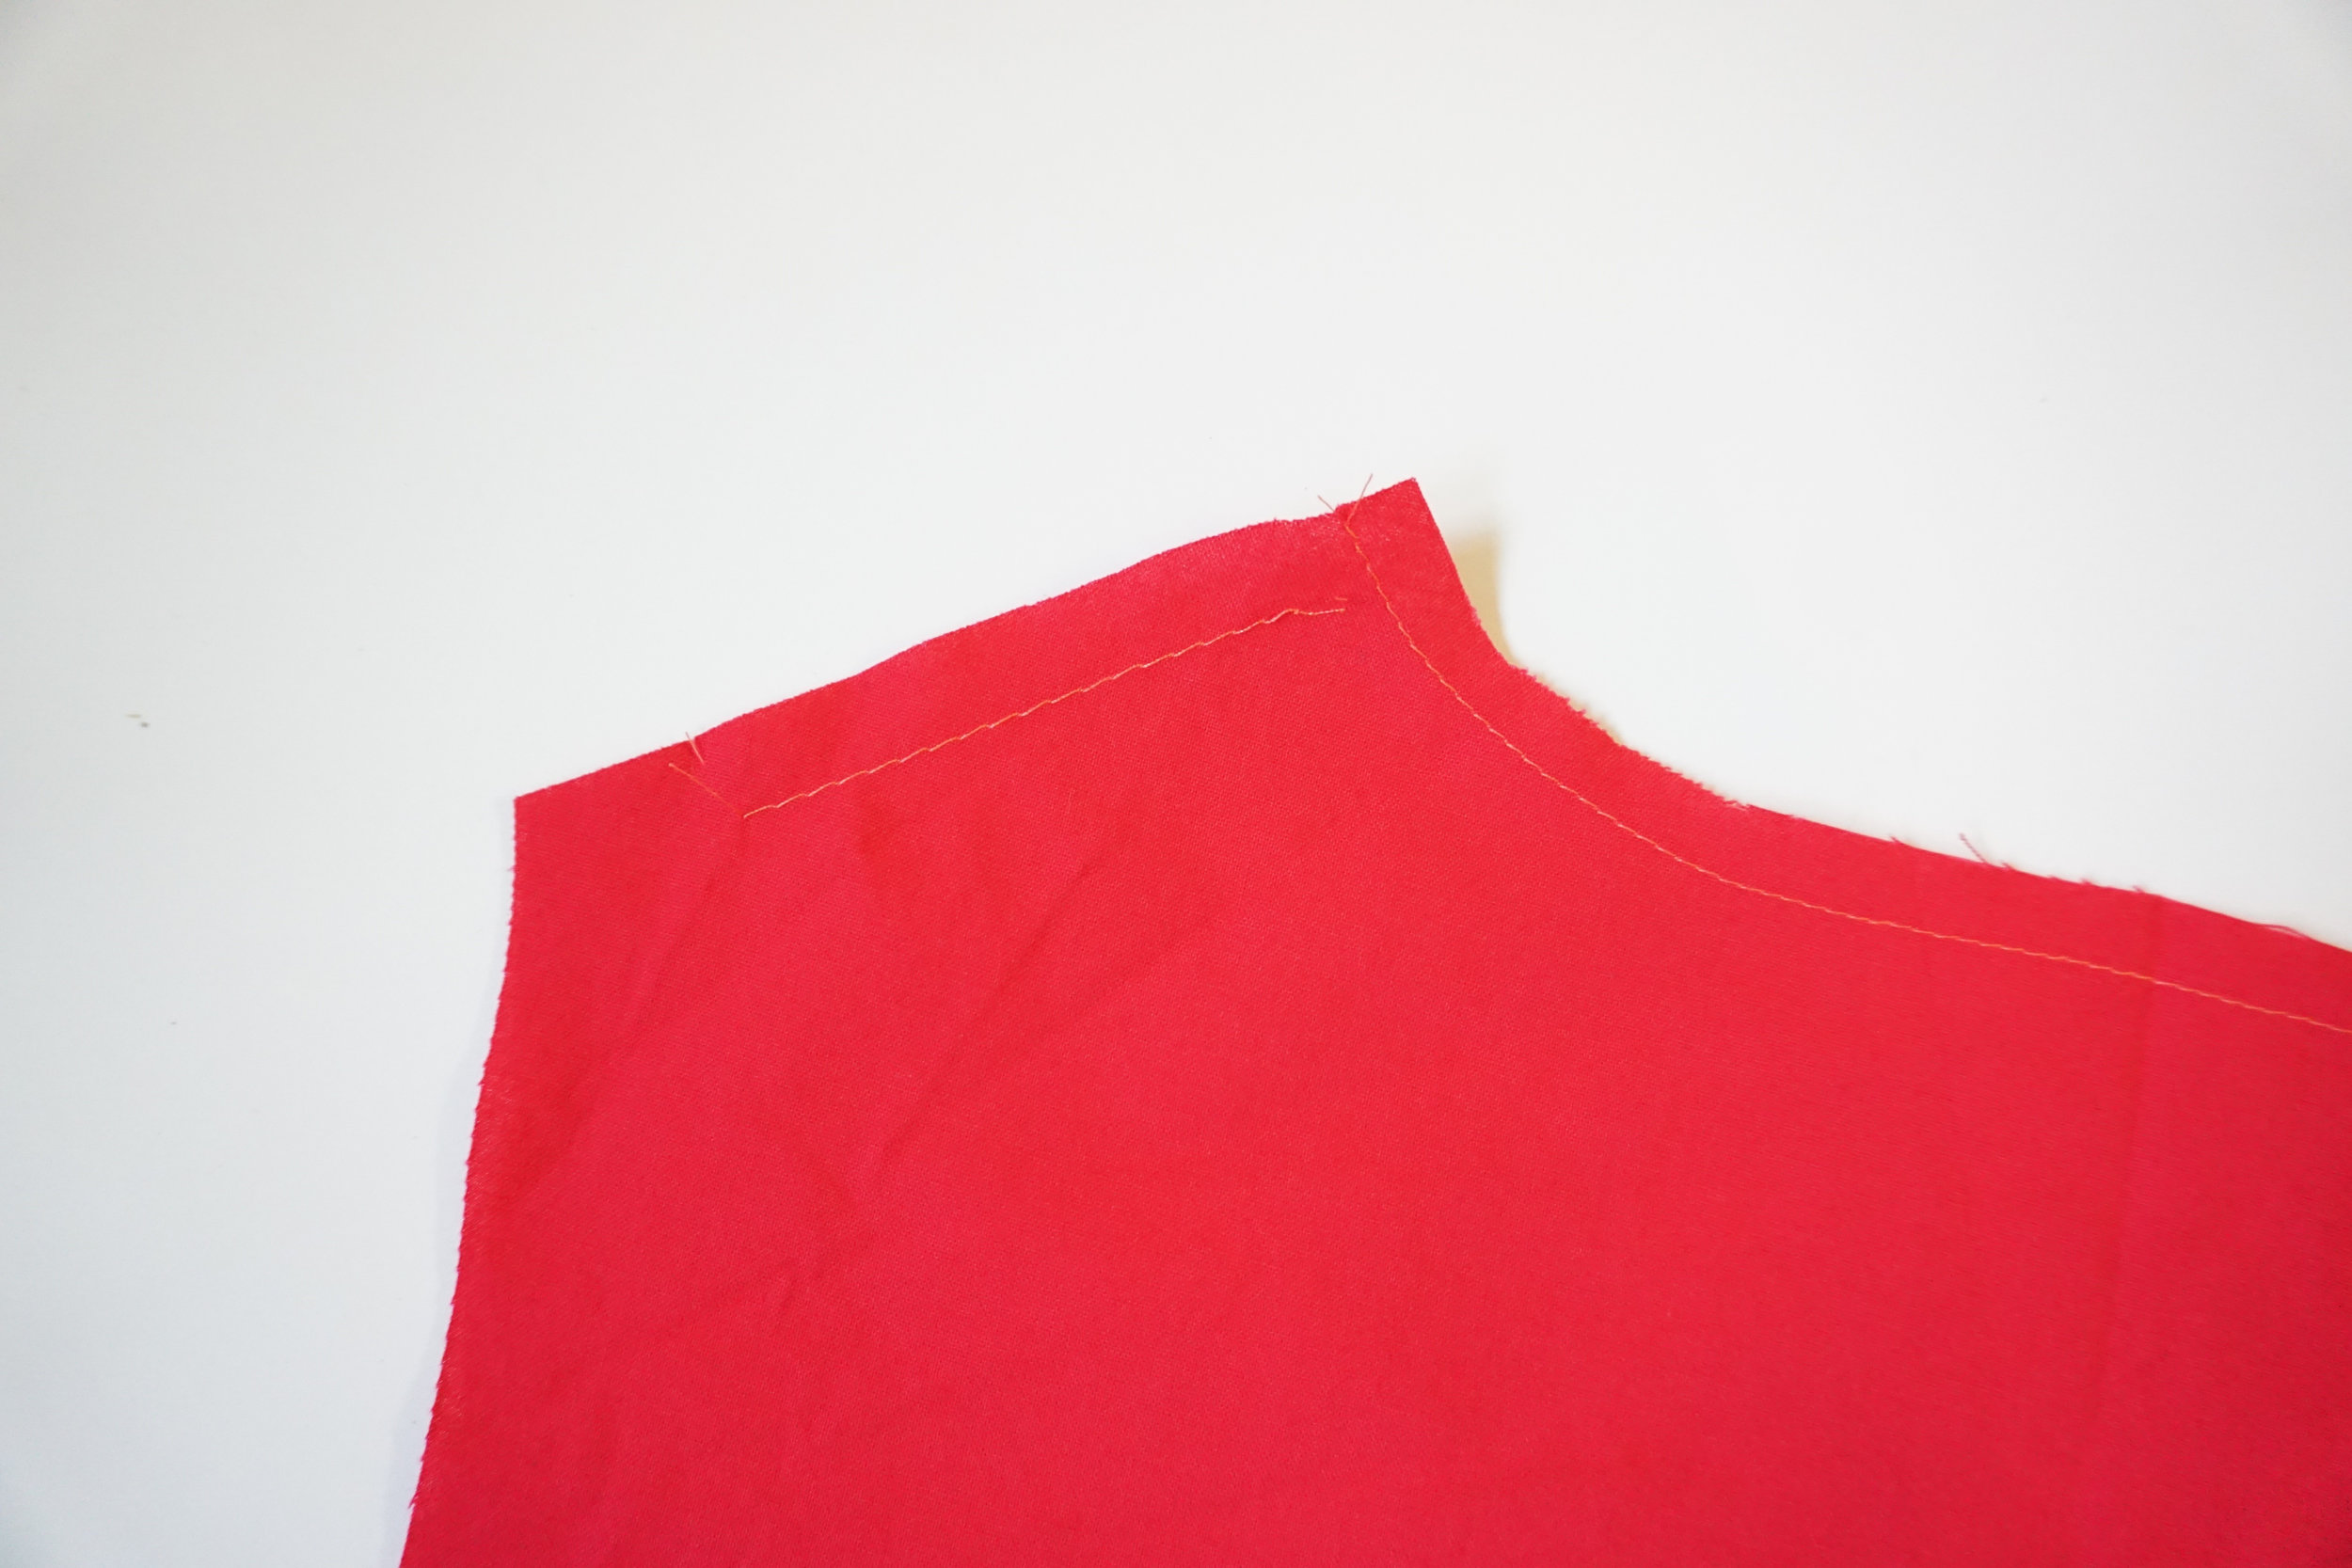 Step 4: Sew an ease stitch at the shoulder seam on the BACK BODICE between the circle and notch.  EASESTITCH : stitch along the seamline, using a basting stitch. Pull thread ends when adjusting fit.